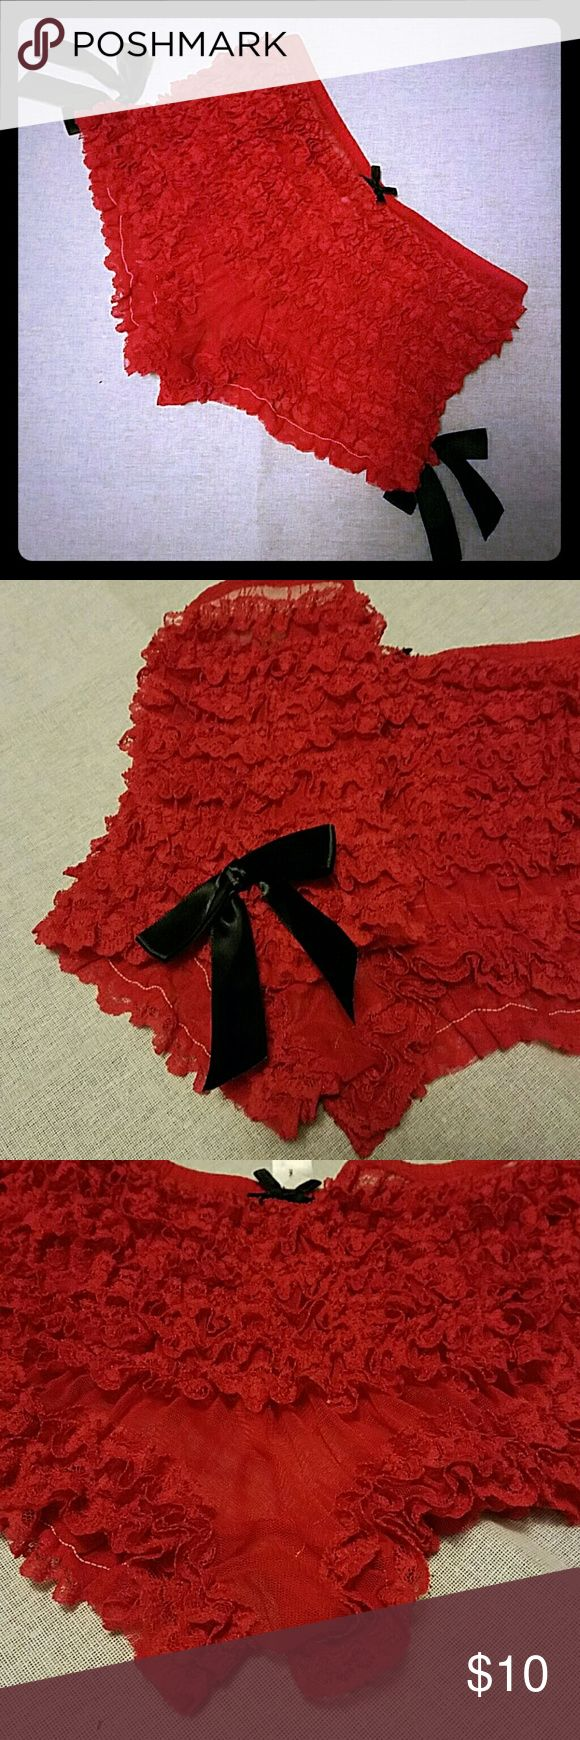 Frederick's of Hollywood Ruffle Red Panties Perfect for Valentine's Day! Sexy red sheer ruffled boy short panties accented with silky black bows on the side and at the top front. Beautiful lace makes up the ruffles. Bought with a plan. Plan changed. Worn once to try on, never worn again. Perfect condition. Frederick's of Hollywood Intimates & Sleepwear Panties